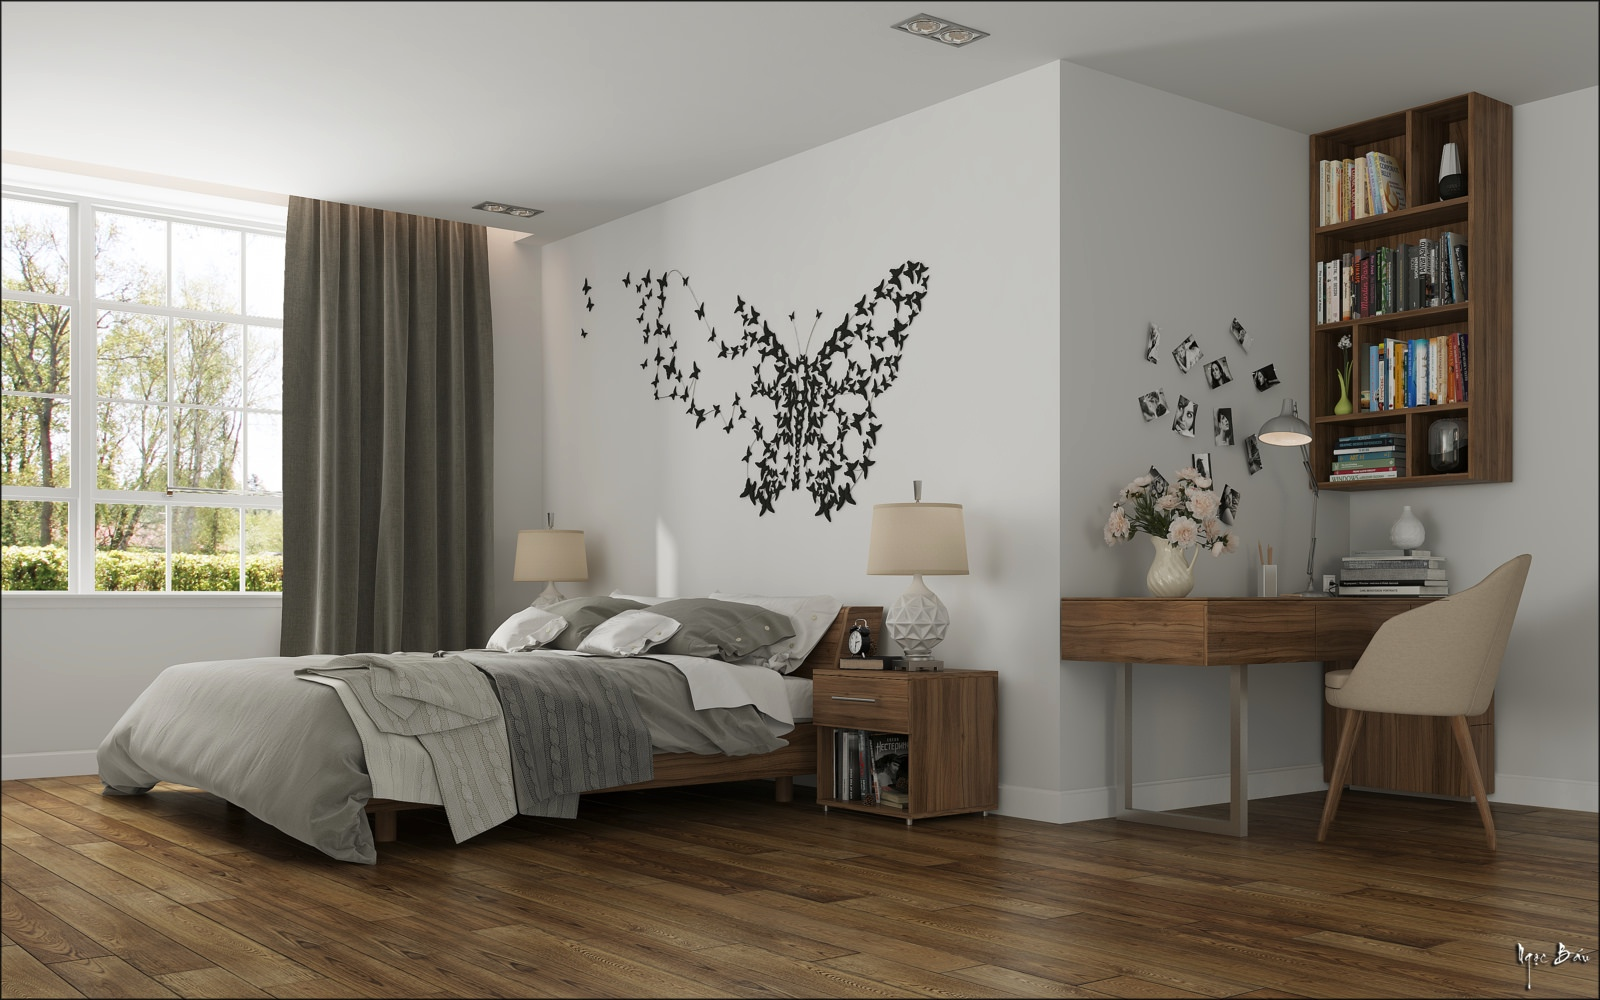 Bedroom butterfly wall art interior design ideas - Wall designs bedroom ...